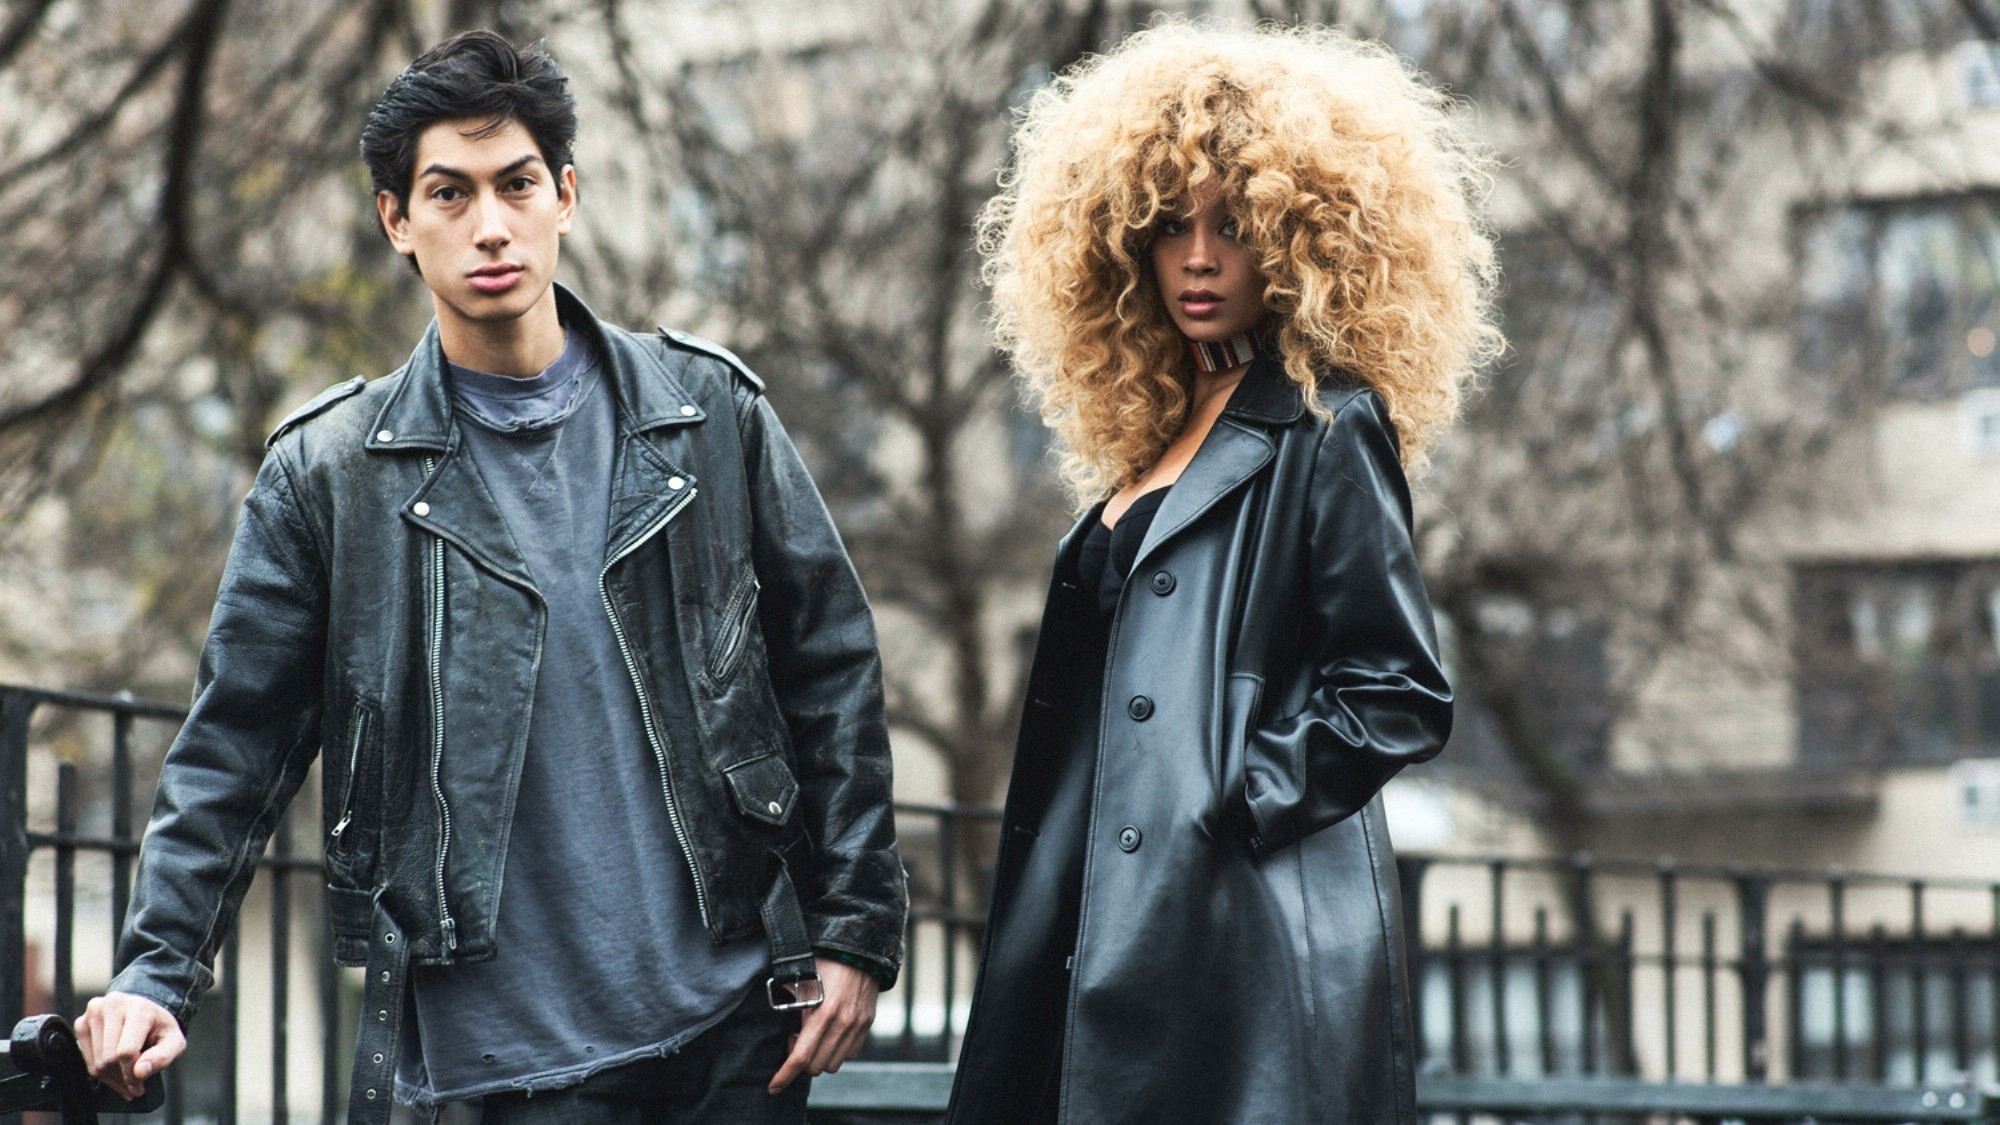 lion babe win best performance by hair in new music video